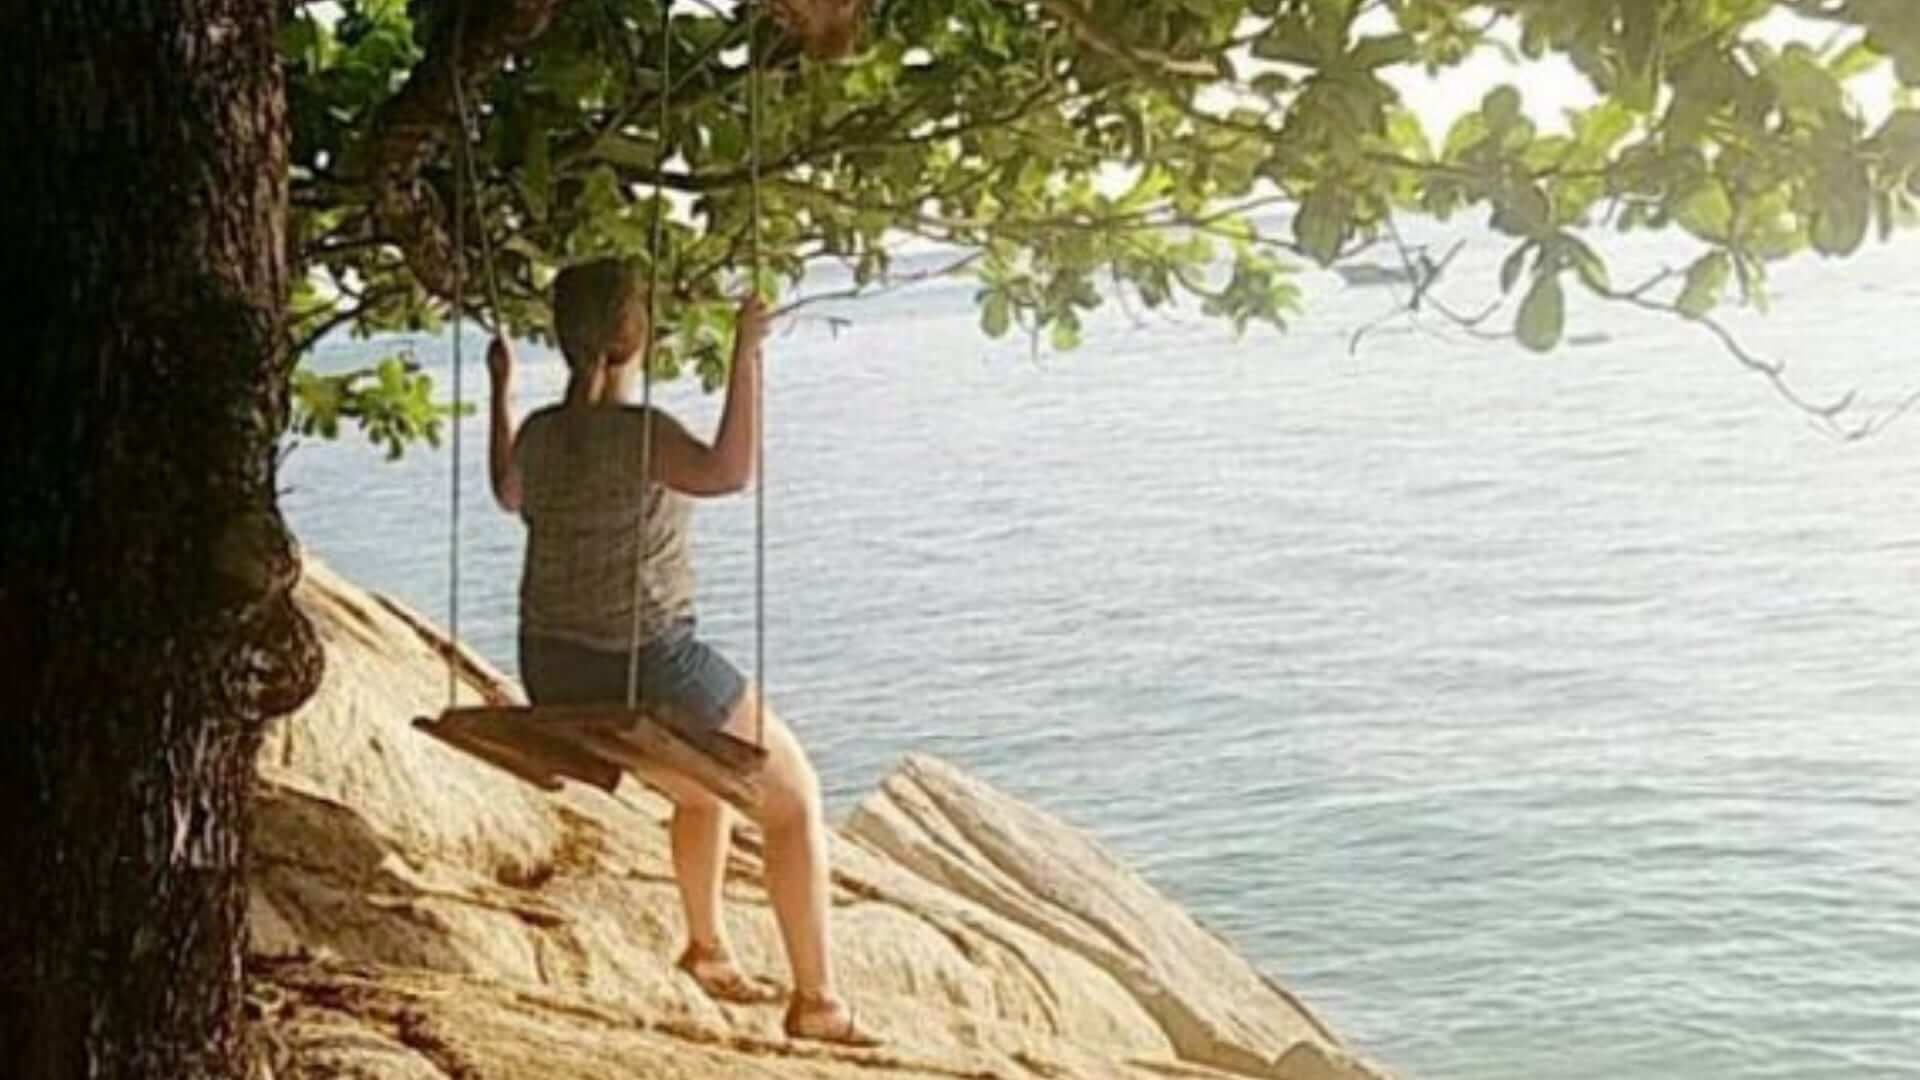 A girl is sitting on a swing under a tree in front of the ocean in Malaysia.